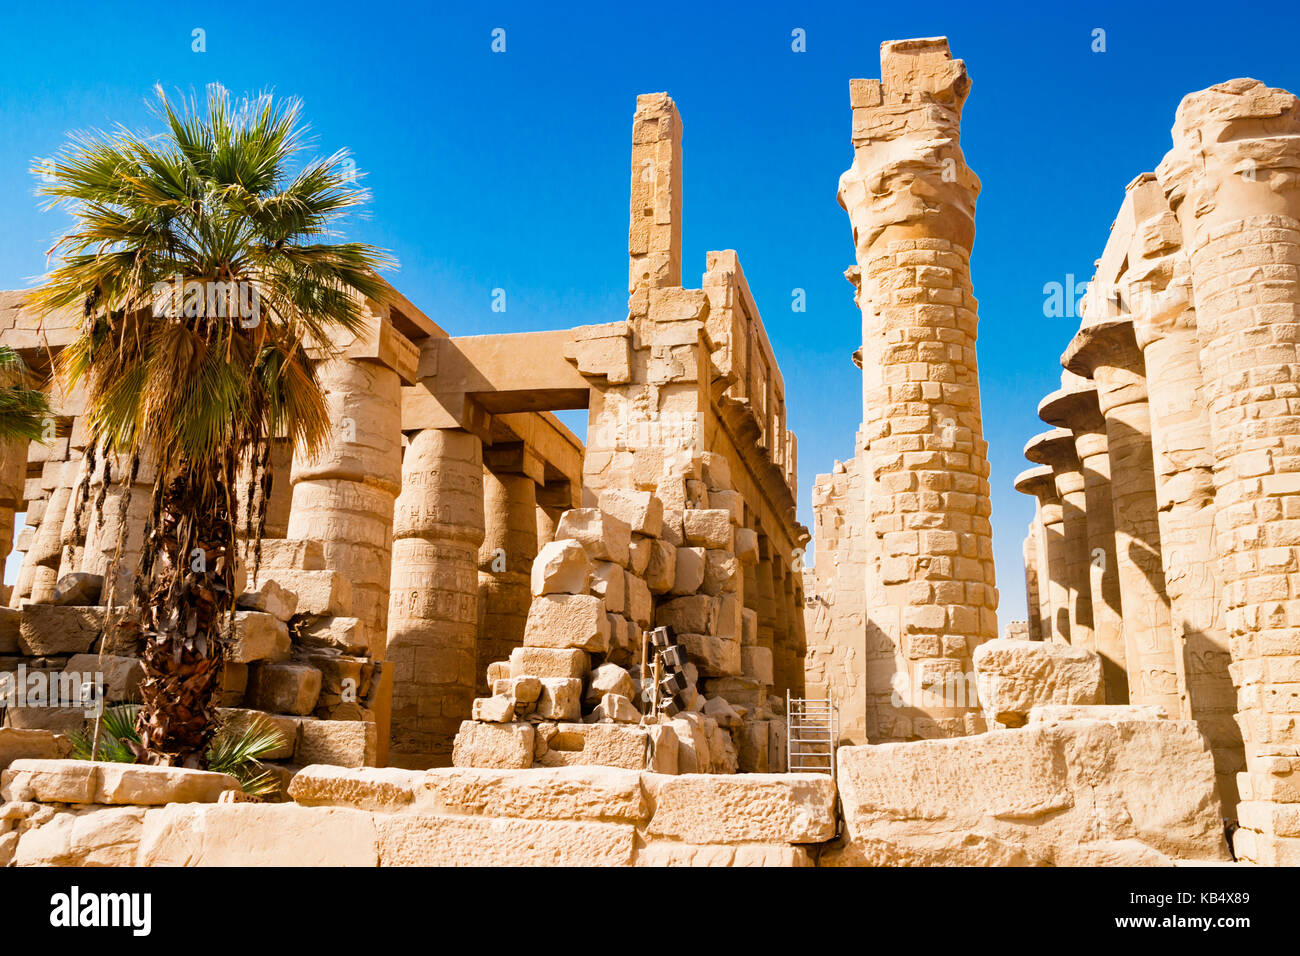 Palm tree near egyptian columns in Luxor, Egypt - Stock Image